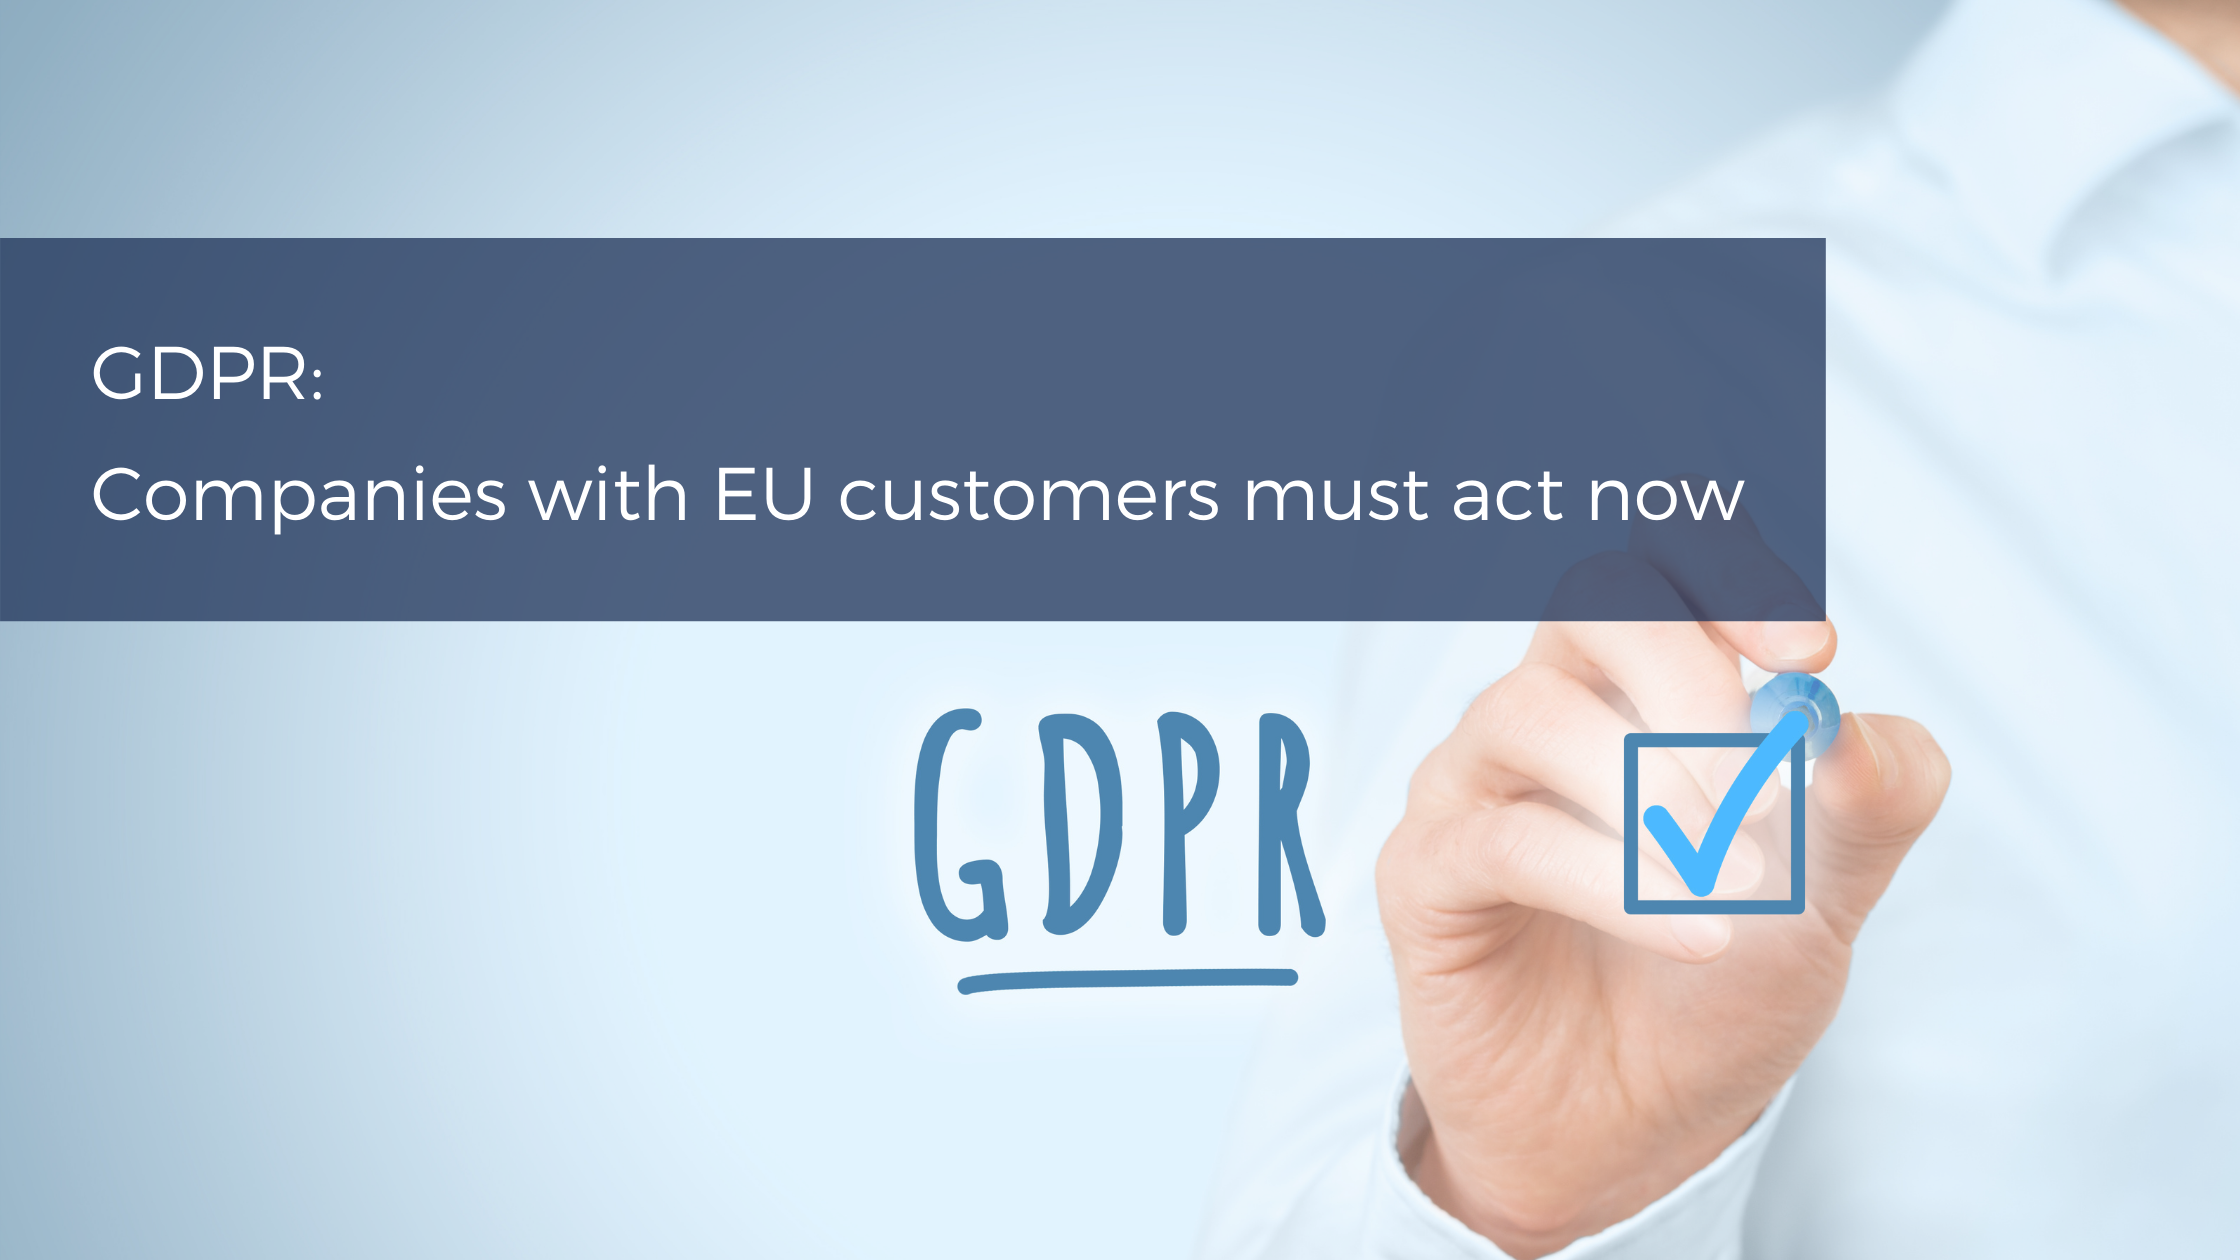 GDPR: Companies with EU customers must act now